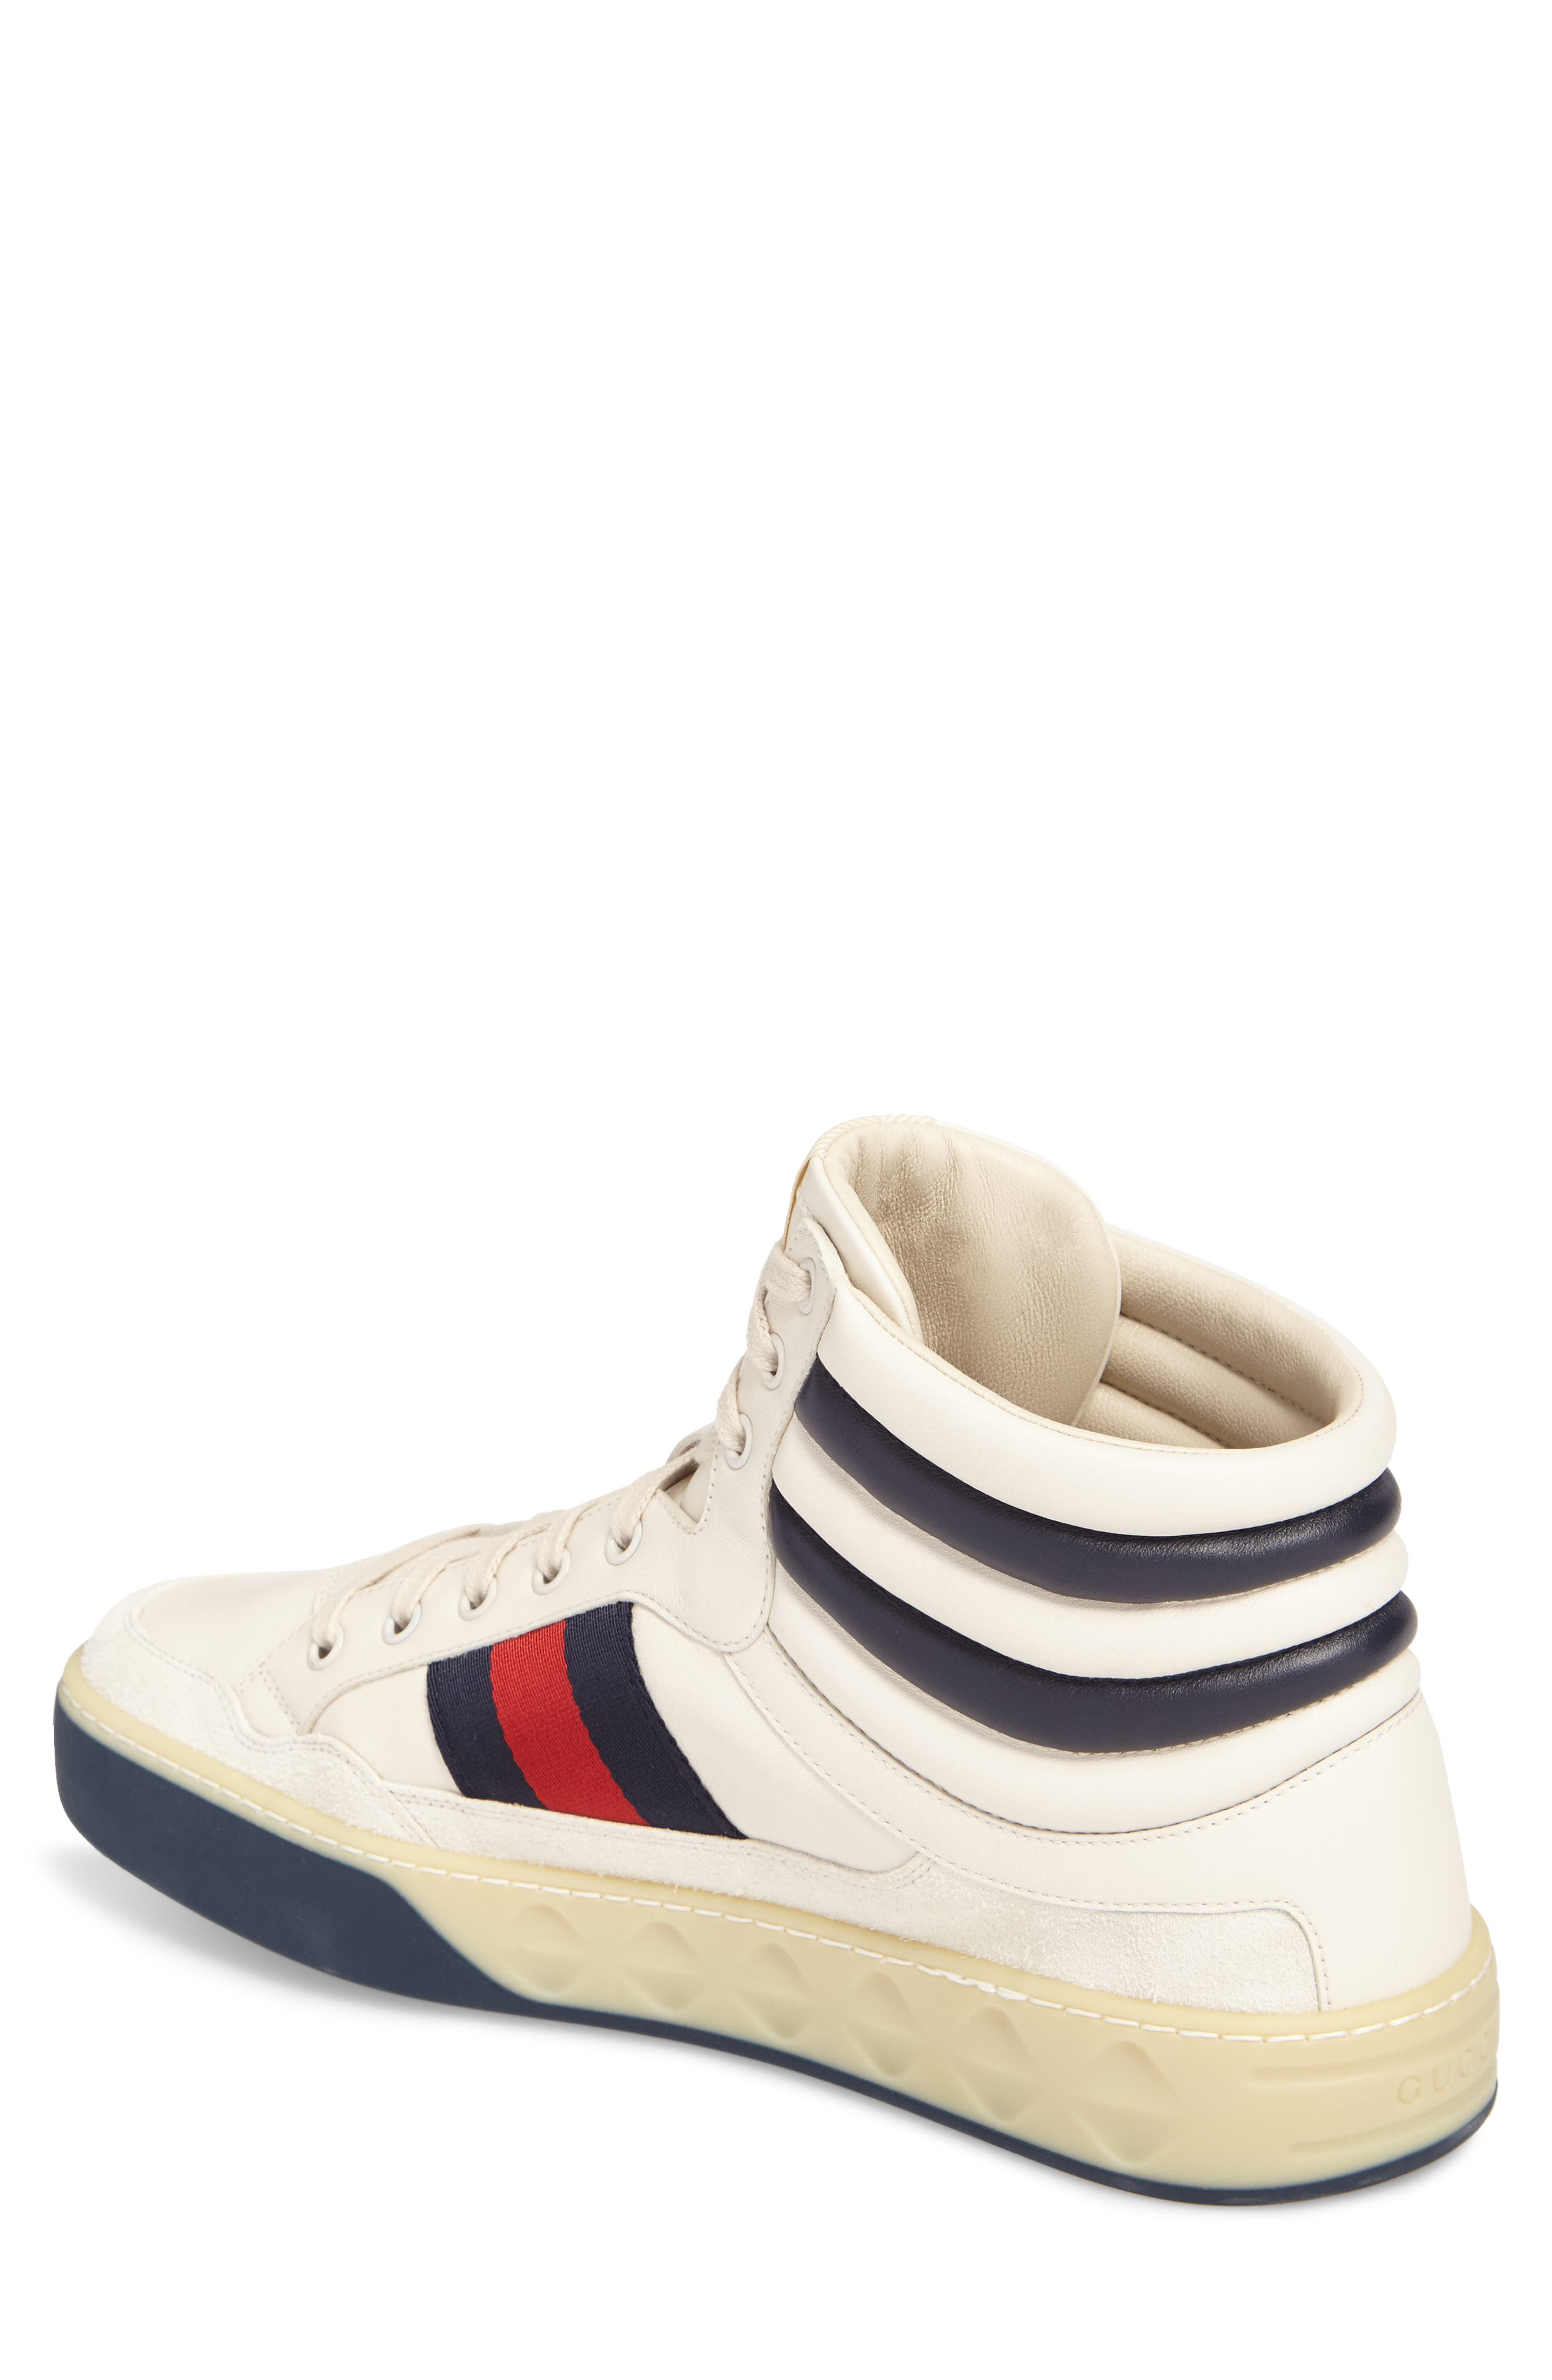 Leather High Top Sneaker,                             Alternate thumbnail 2, color,                             WHITE LEATHER/ SUEDE